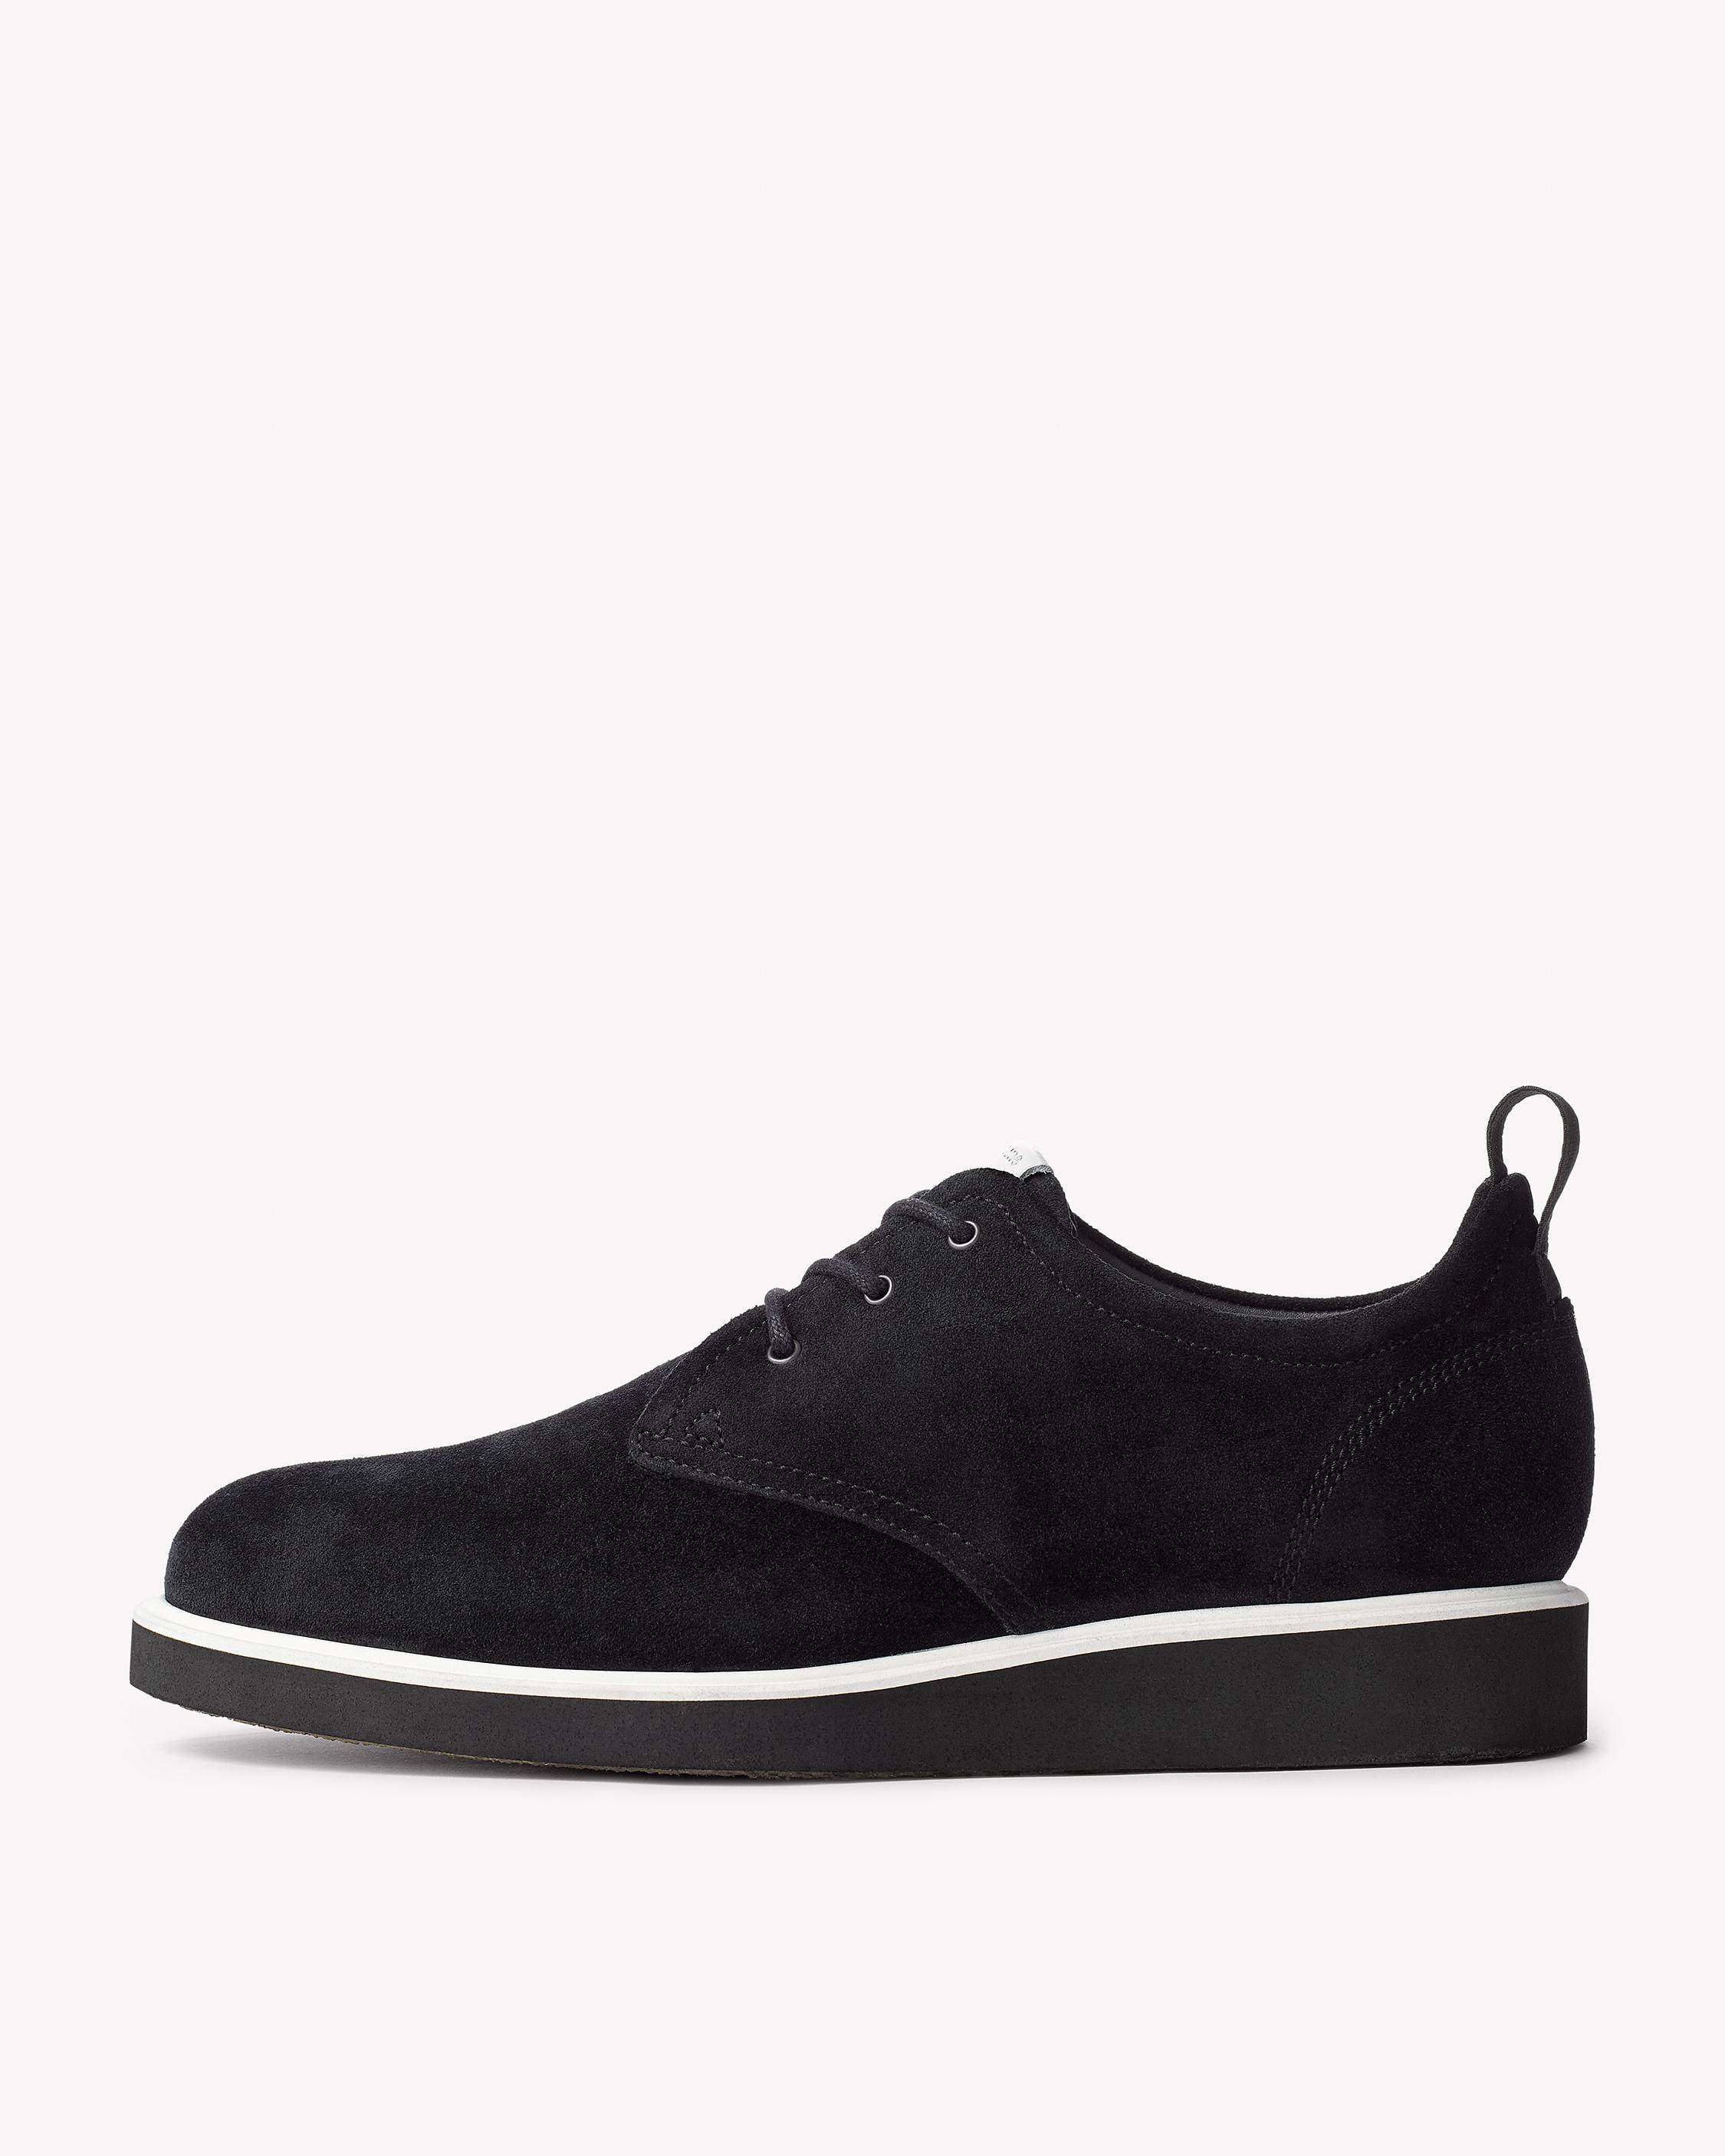 Buy Cheap Outlet rag & bone Elliot Oxford Clearance Geniue Stockist cnIdKycEYa